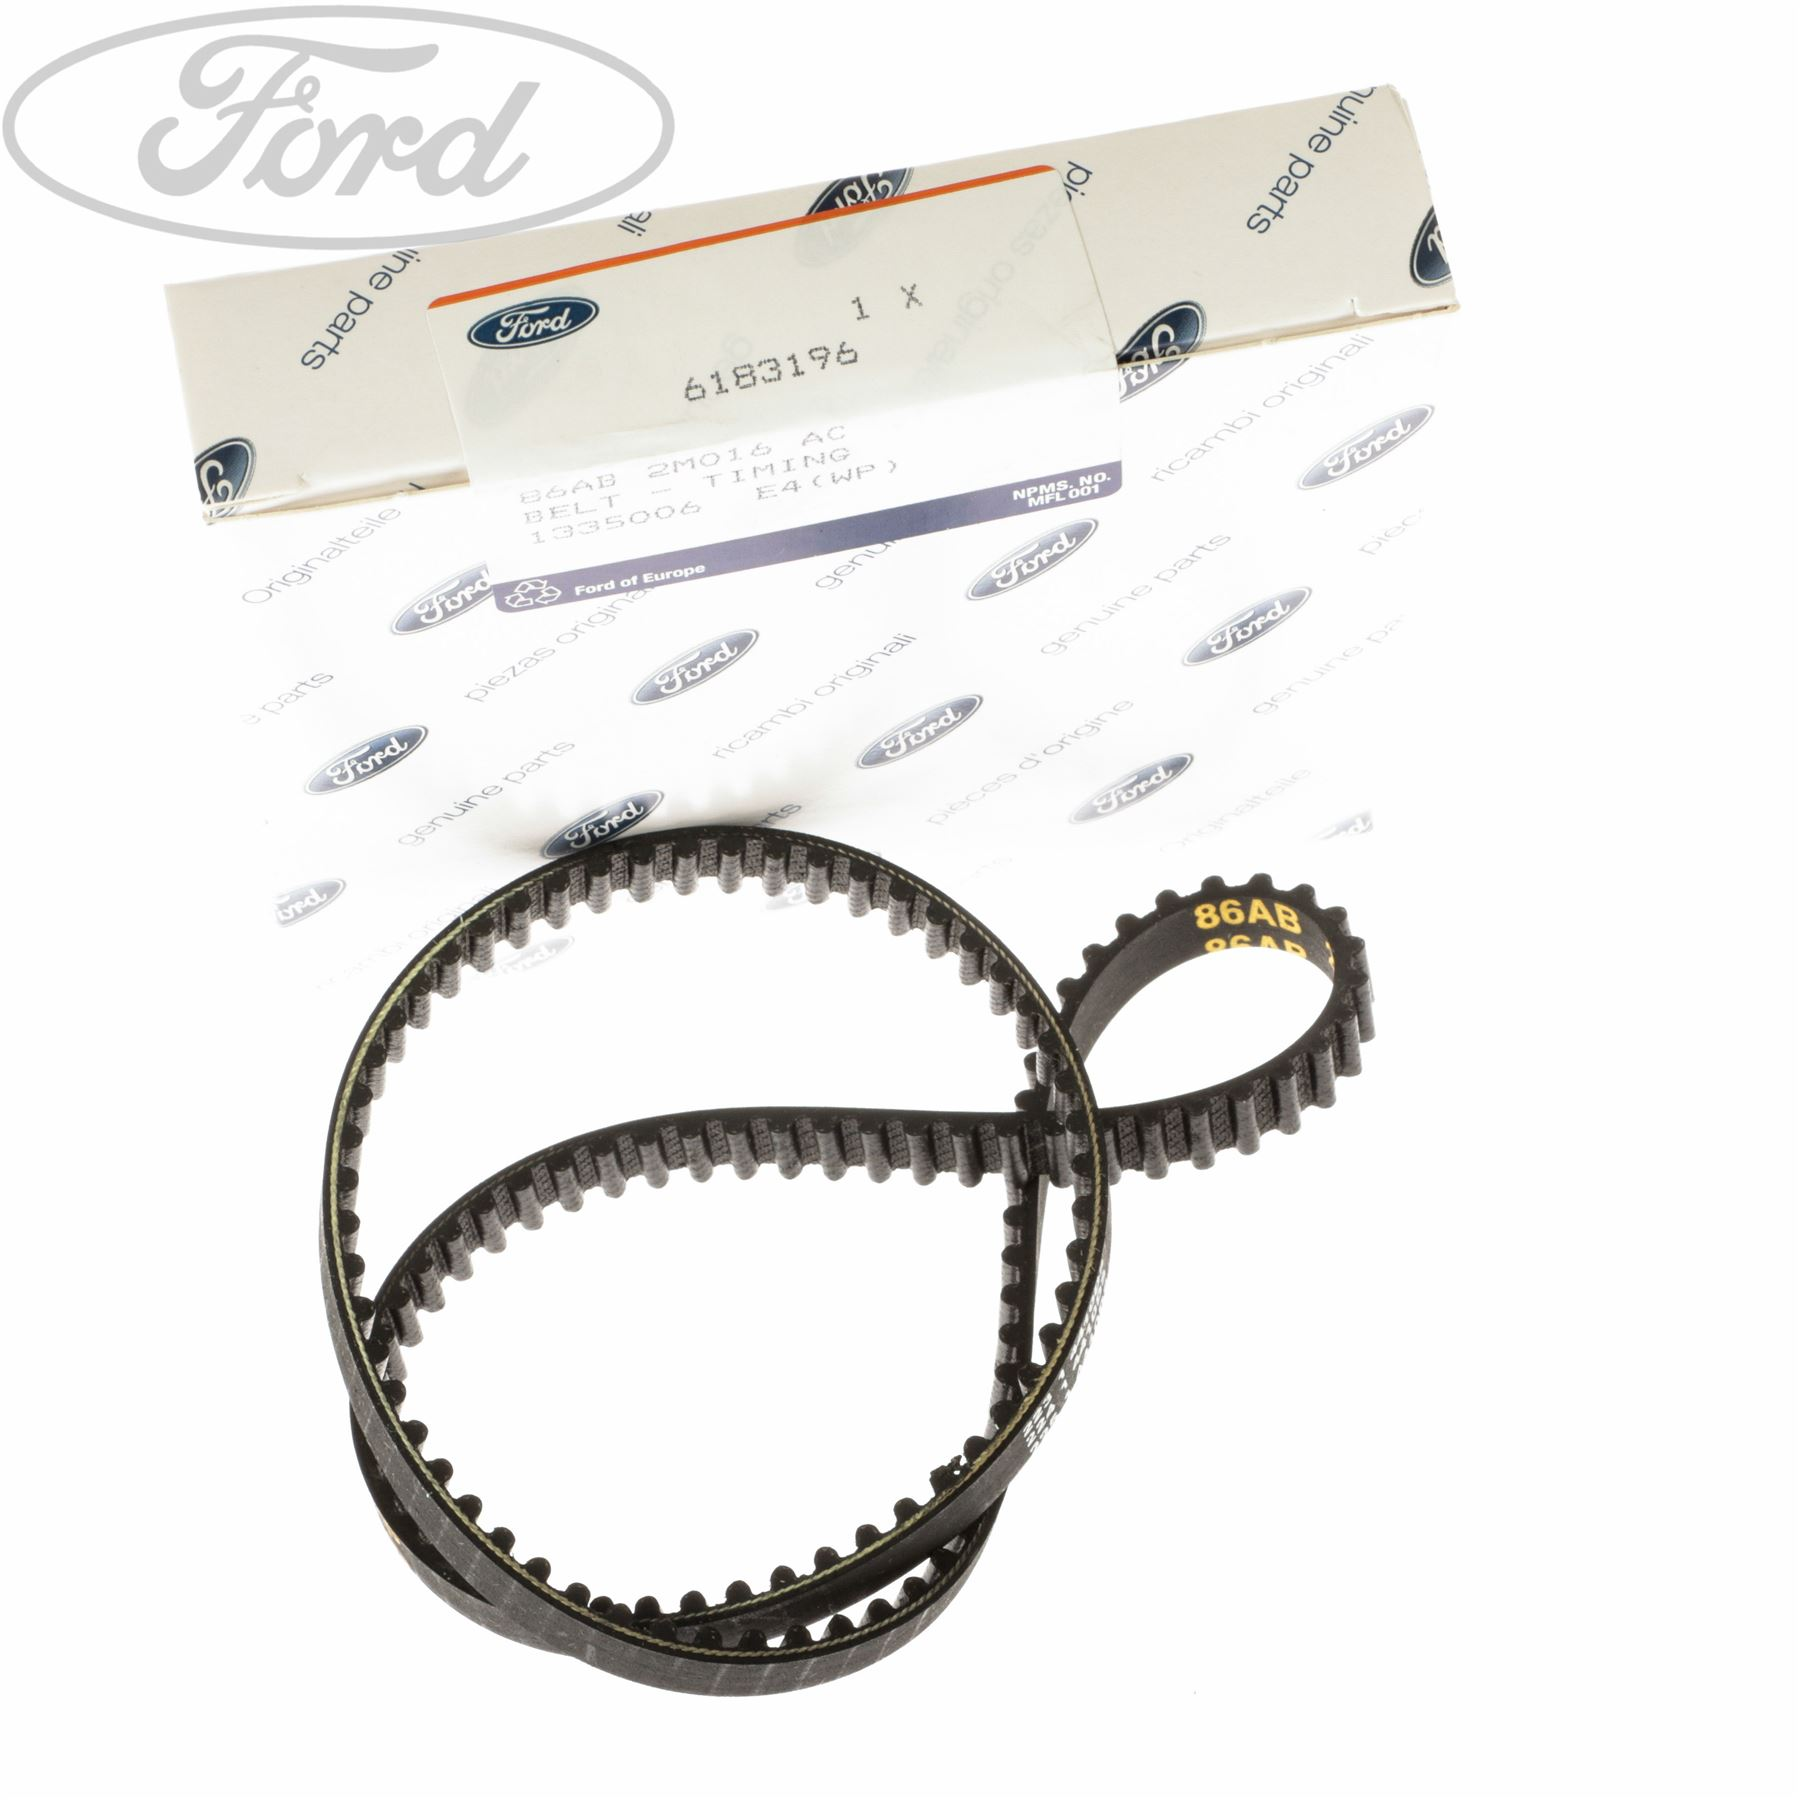 Genuine Ford Escort Mk4 Orion Mk2 Engine Timing Belt With Abs 6183196